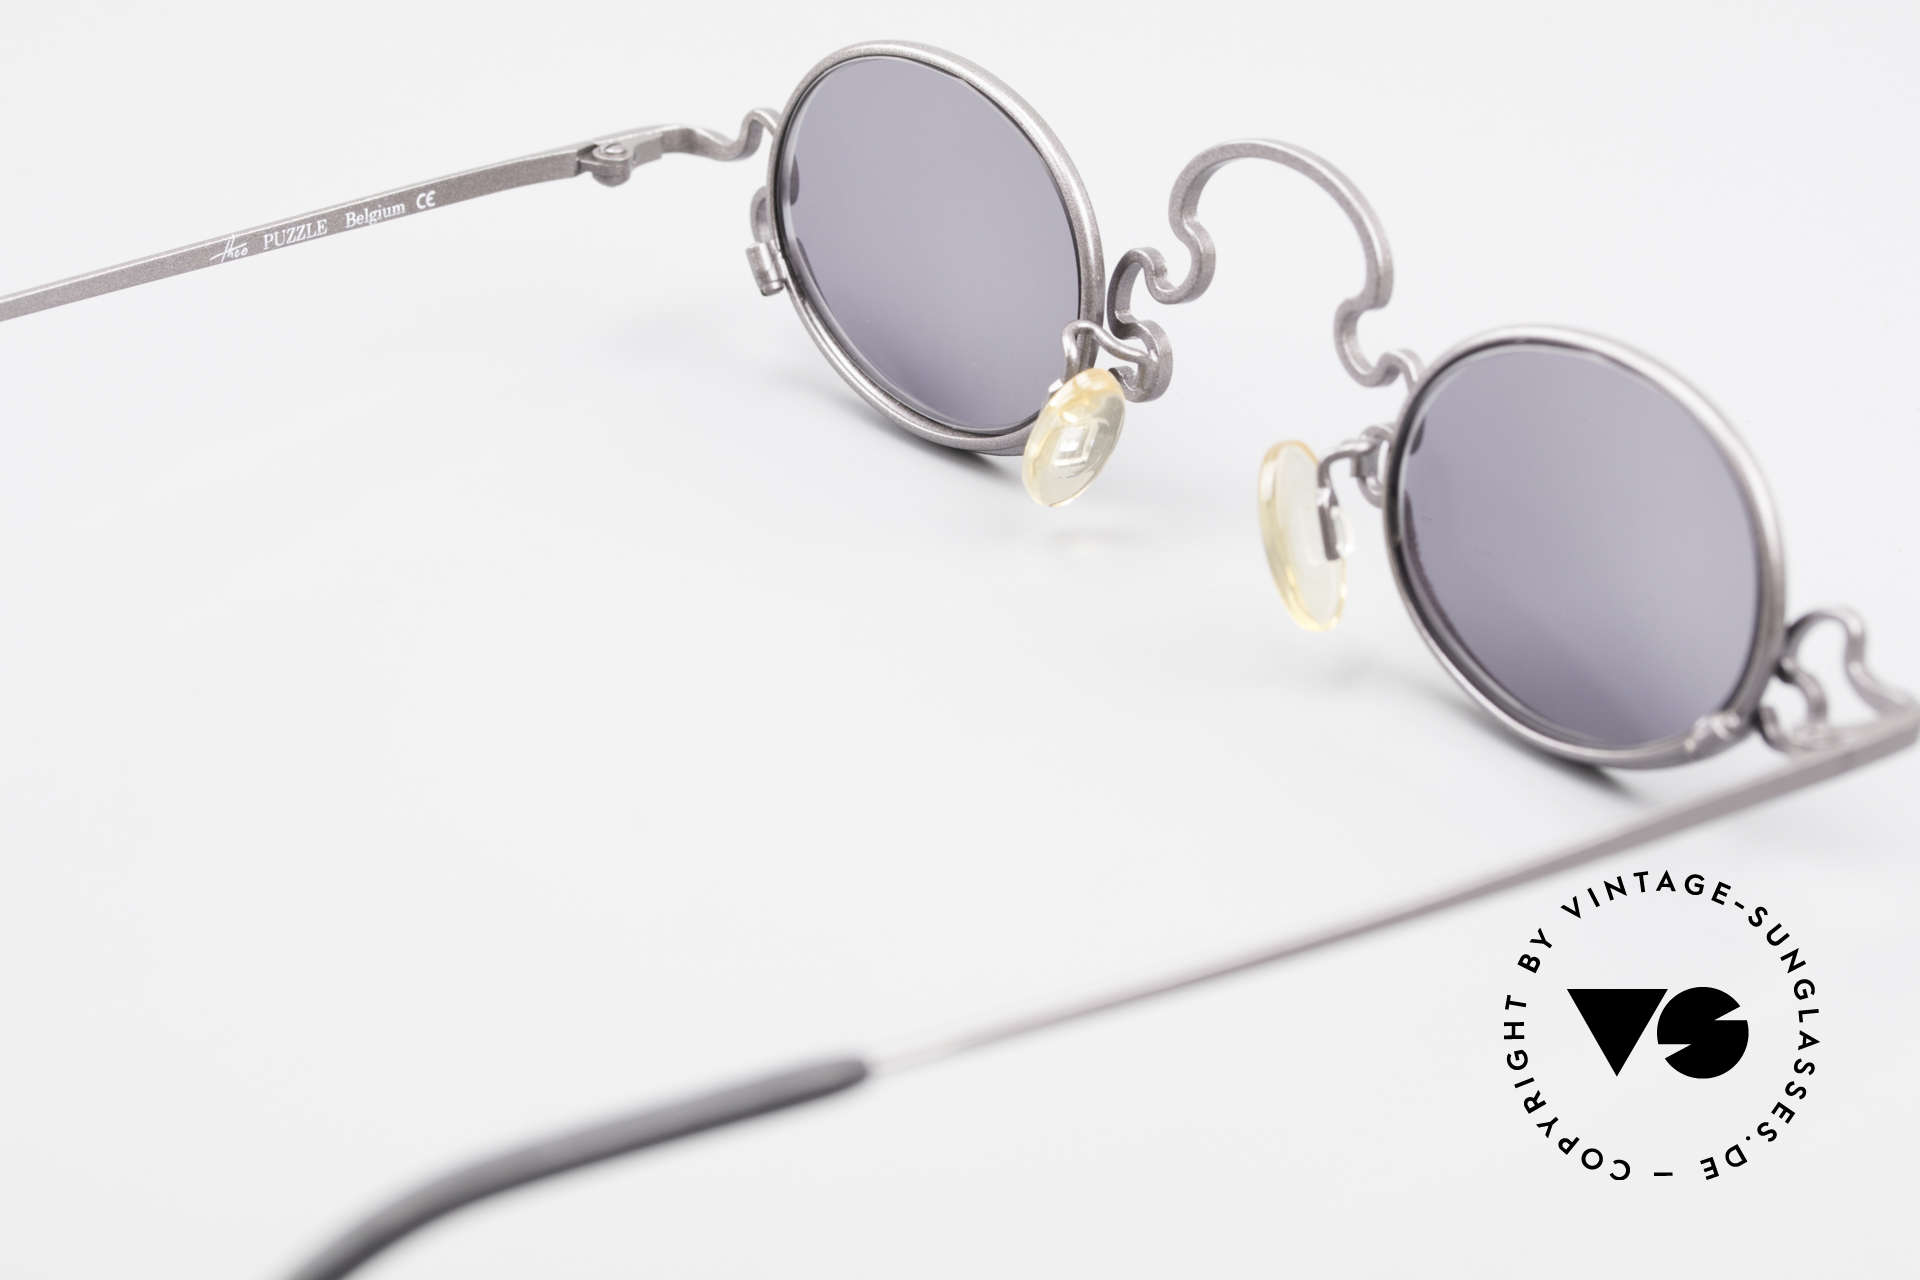 Theo Belgium Puzzle Spaghetti Sunglasses Ladies, so to speak: vintage sunglasses with representativeness, Made for Women